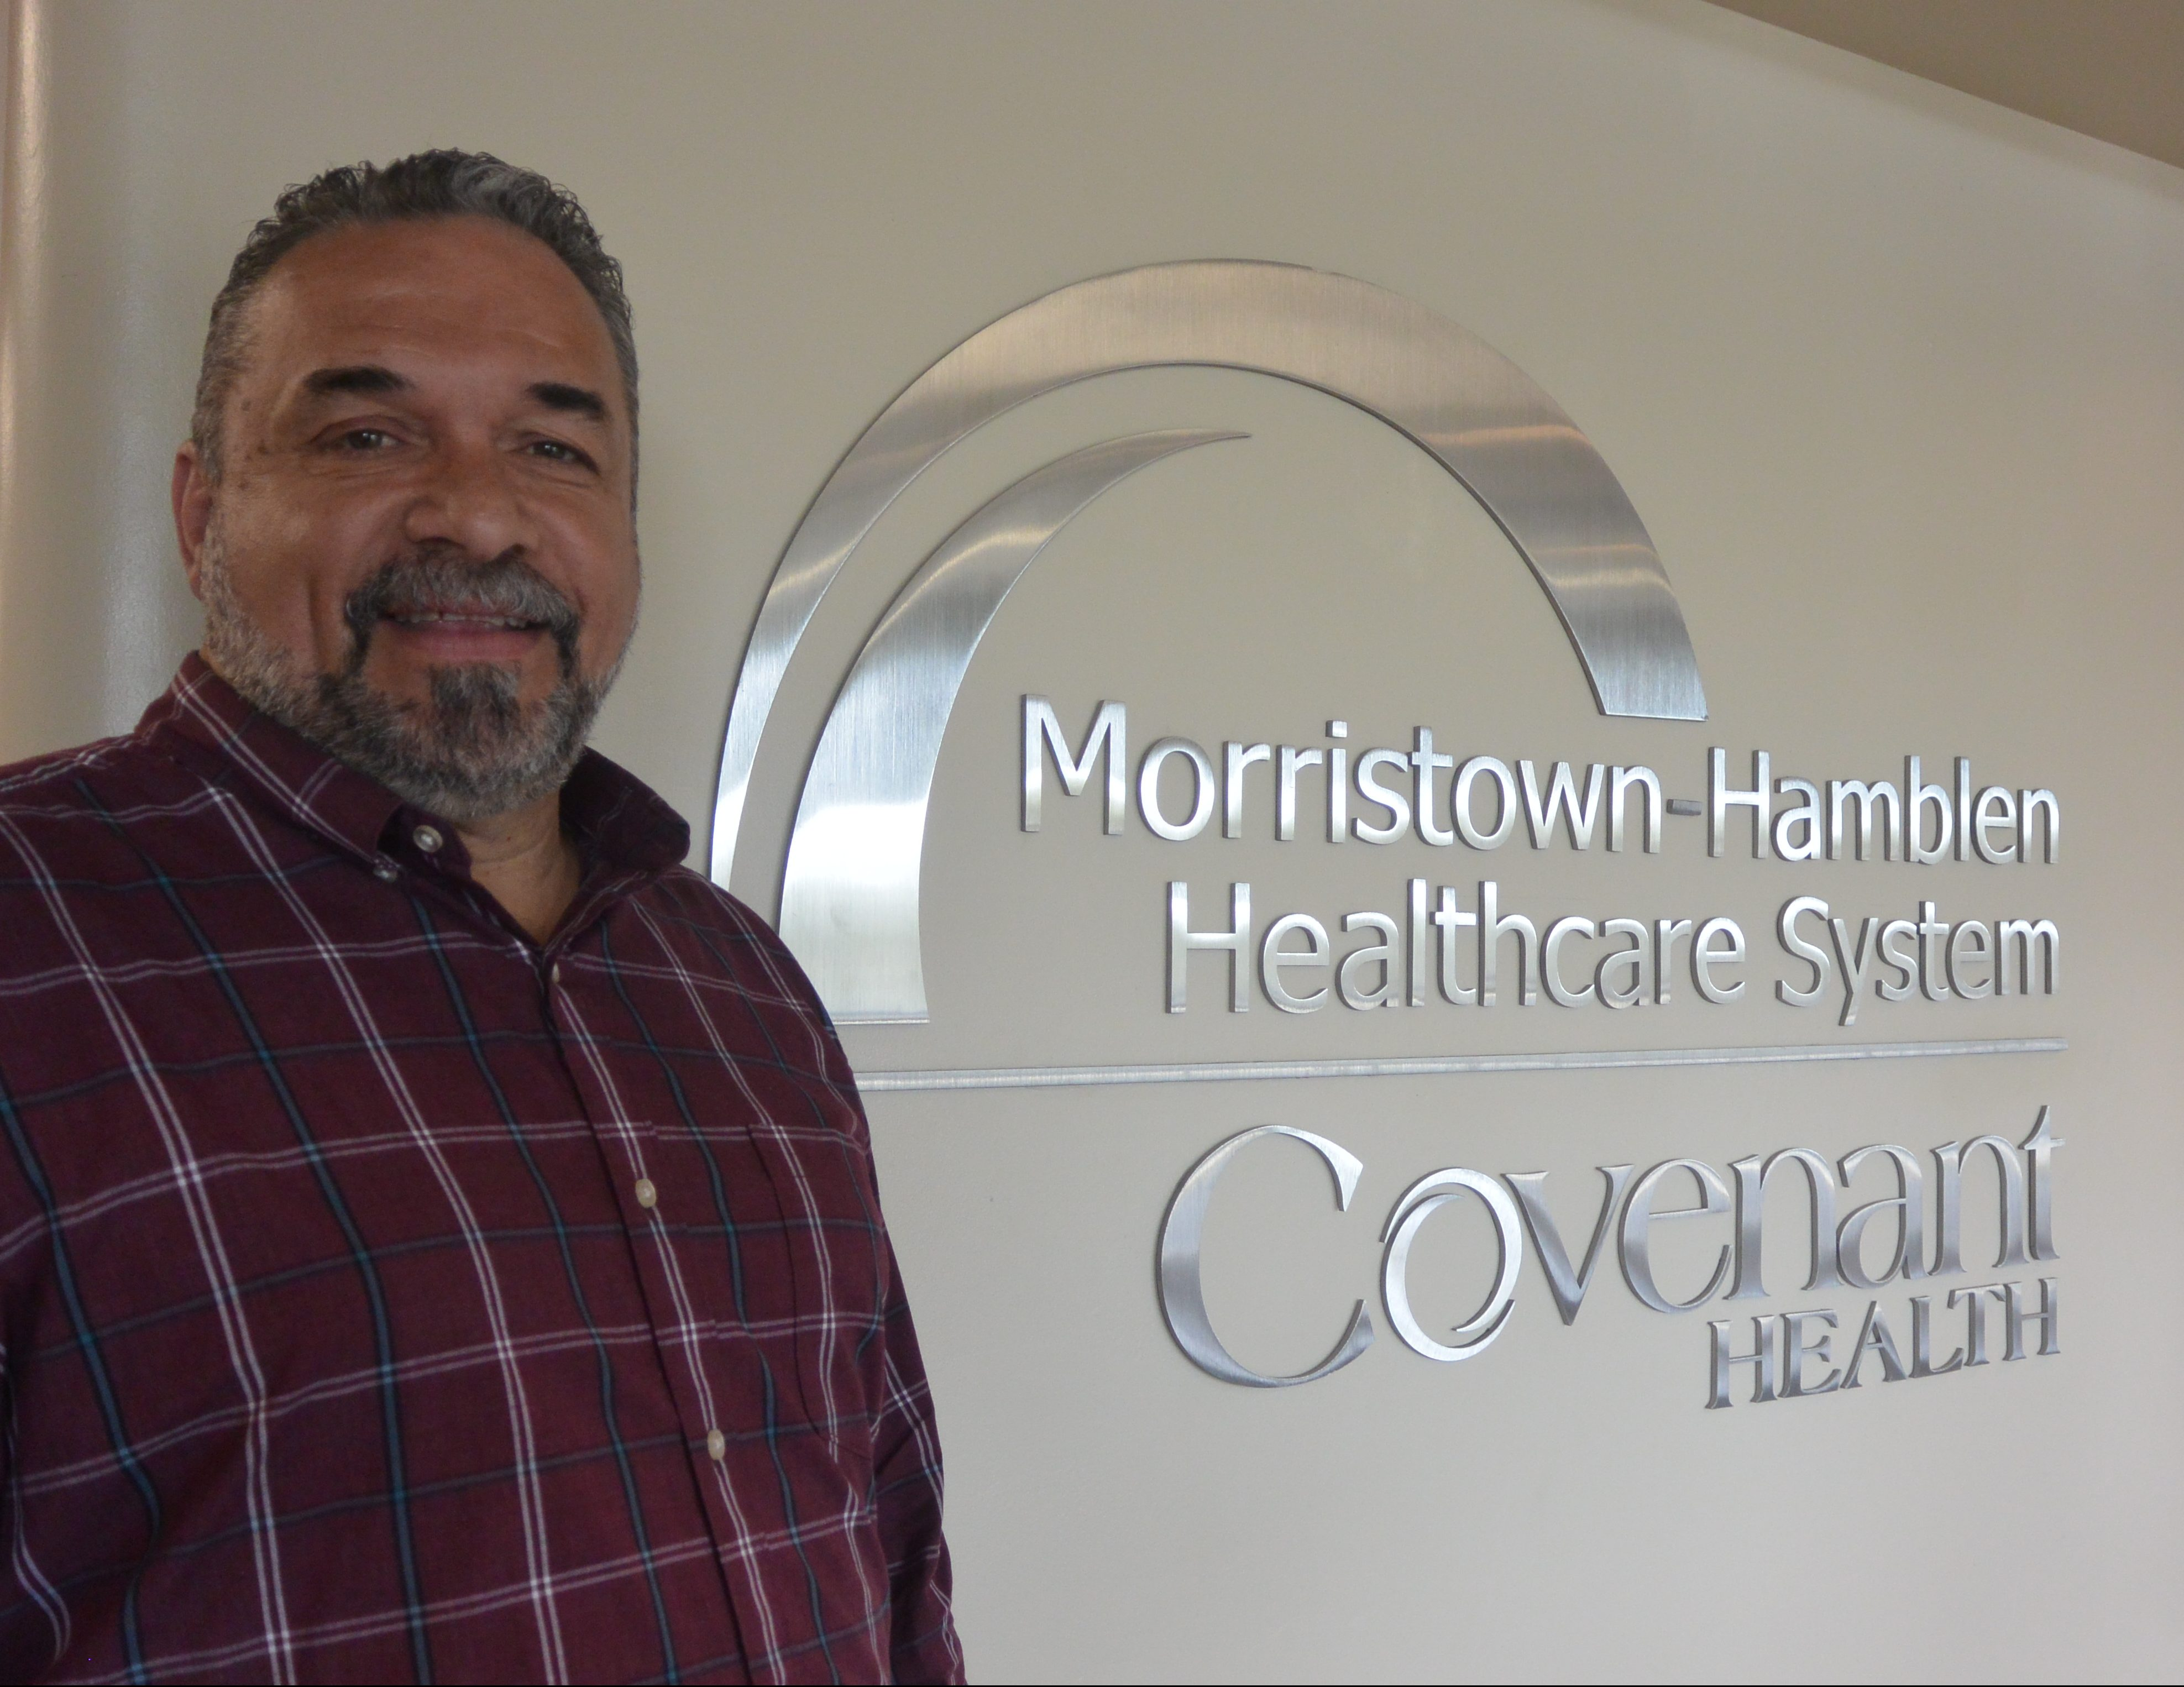 Meet Pastor Glen Dockins, a volunteer chaplain at Morristown-Hamblen Healthcare System.